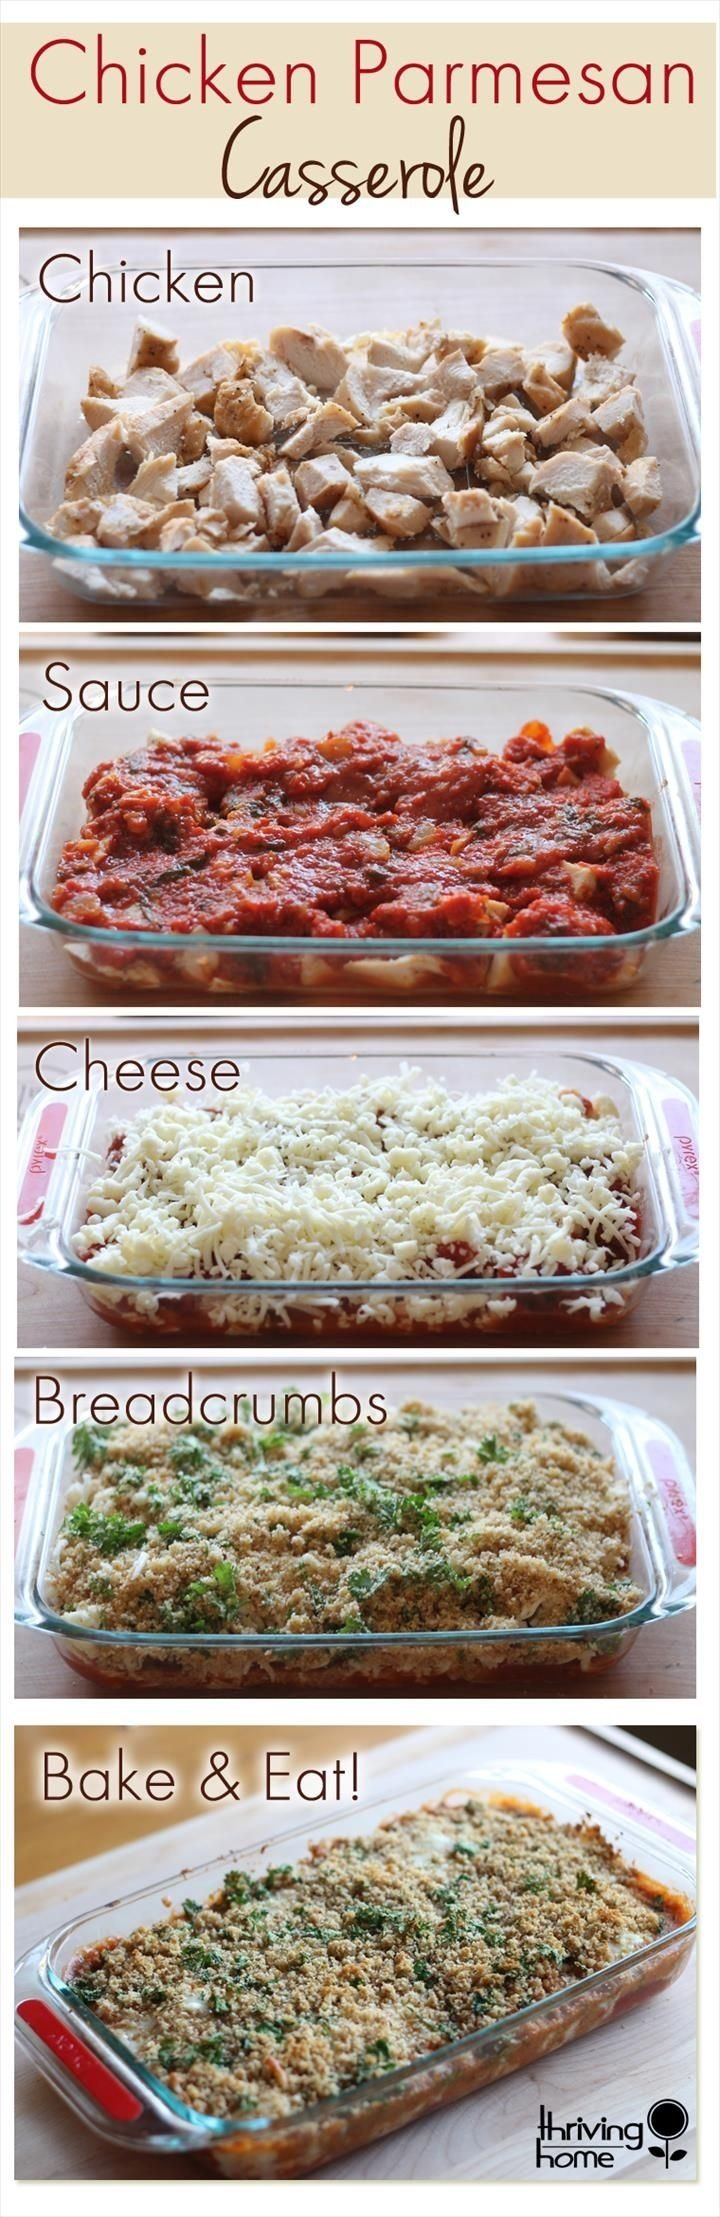 10 Great Dinner Ideas For Large Groups 25 recipes for large groups on a budget crowd food parmesan and crowd 2021